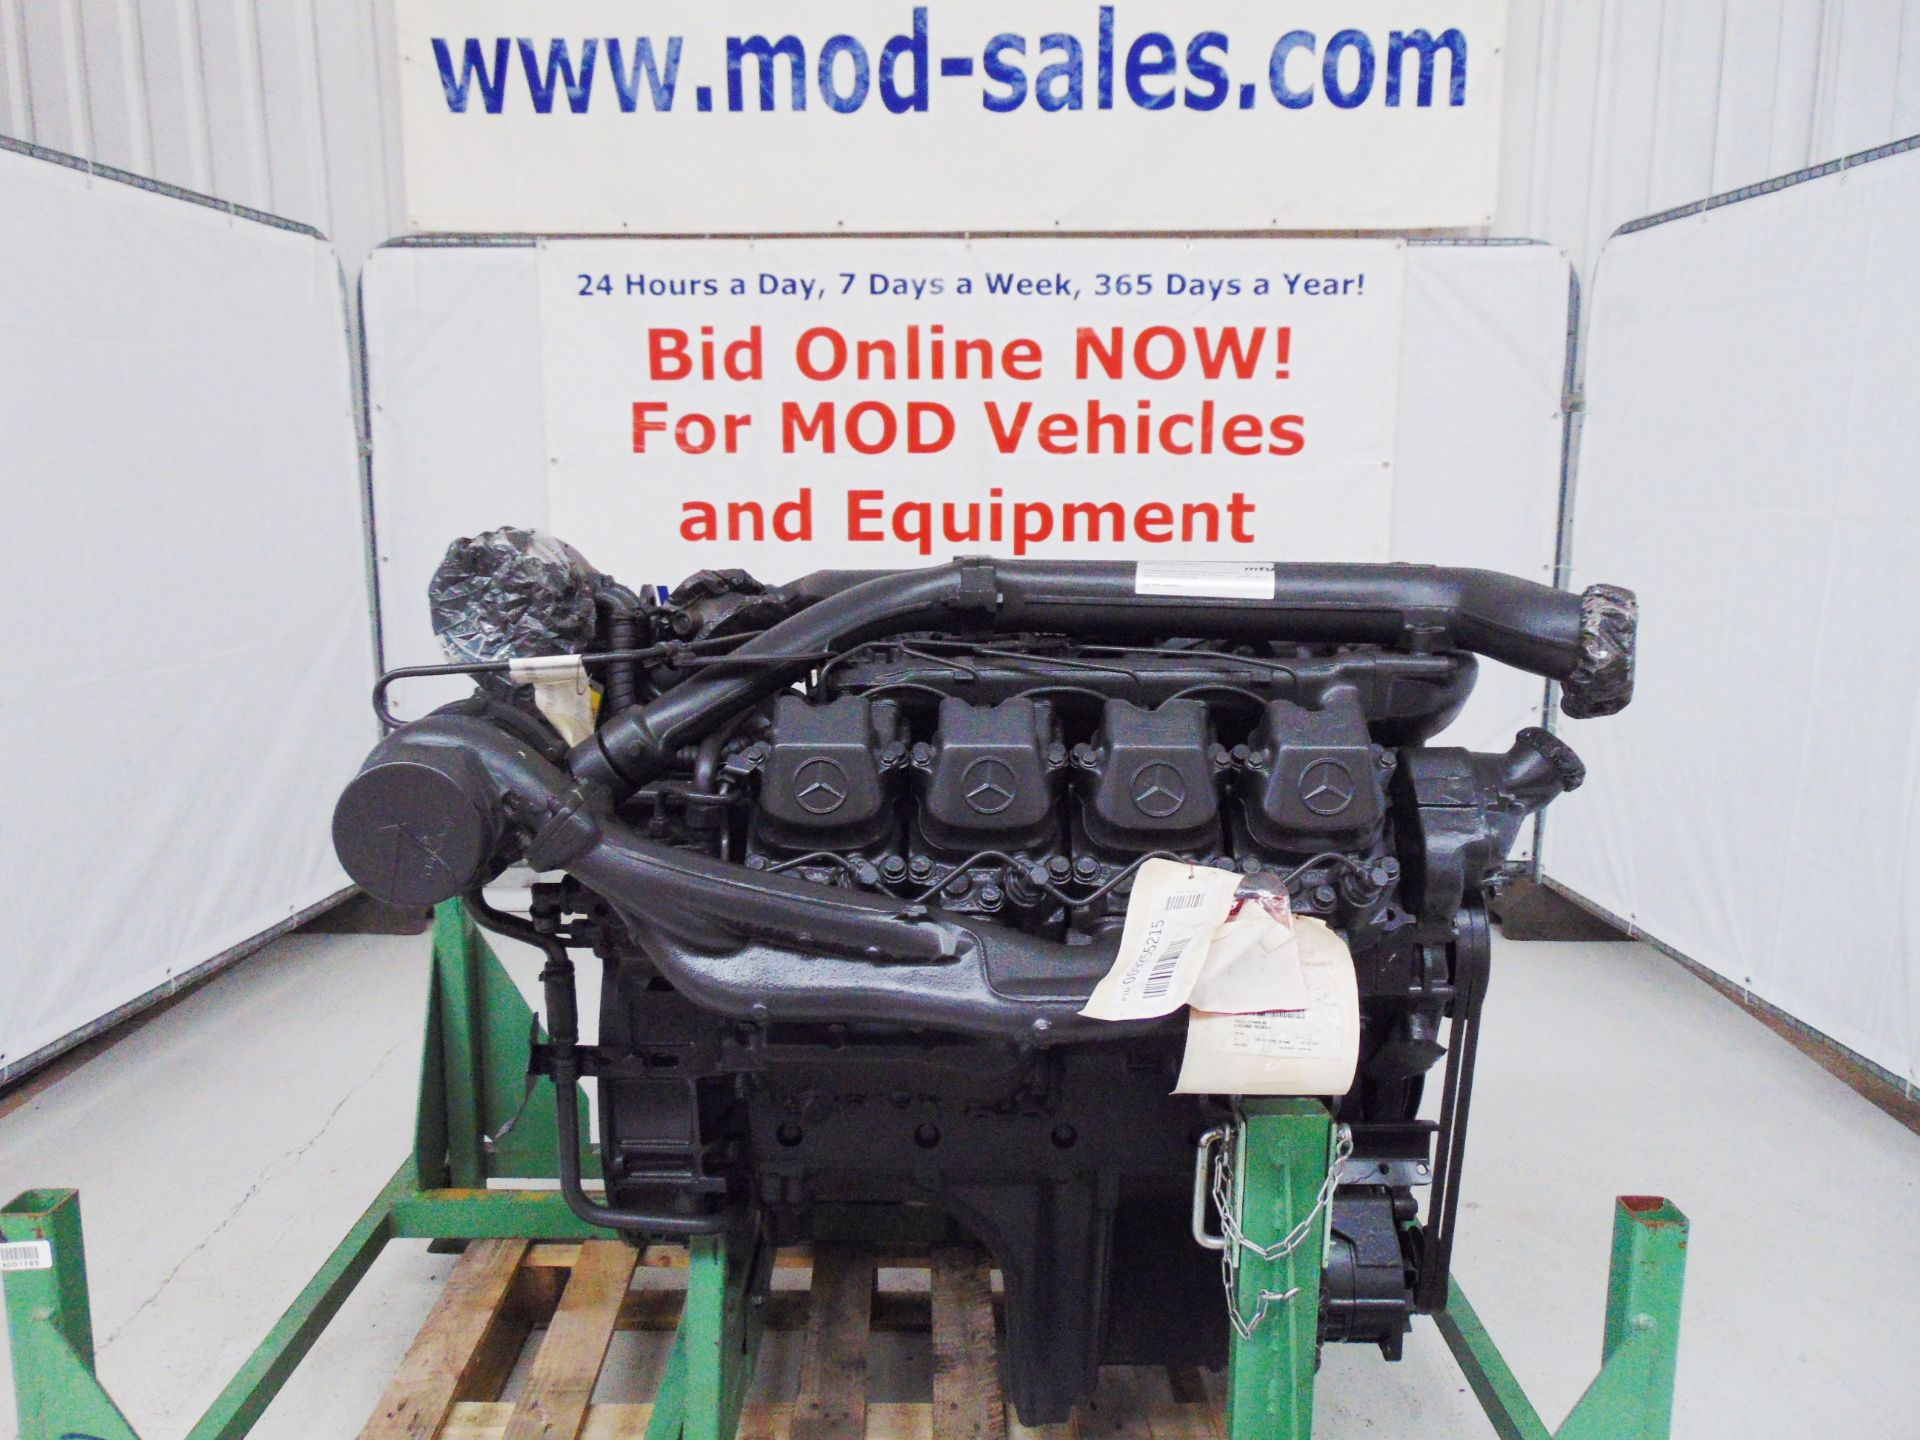 Lot 6 - Brand New & Unused Mercedes-Benz OM402LA V8 Twin Turbo Diesel Engine